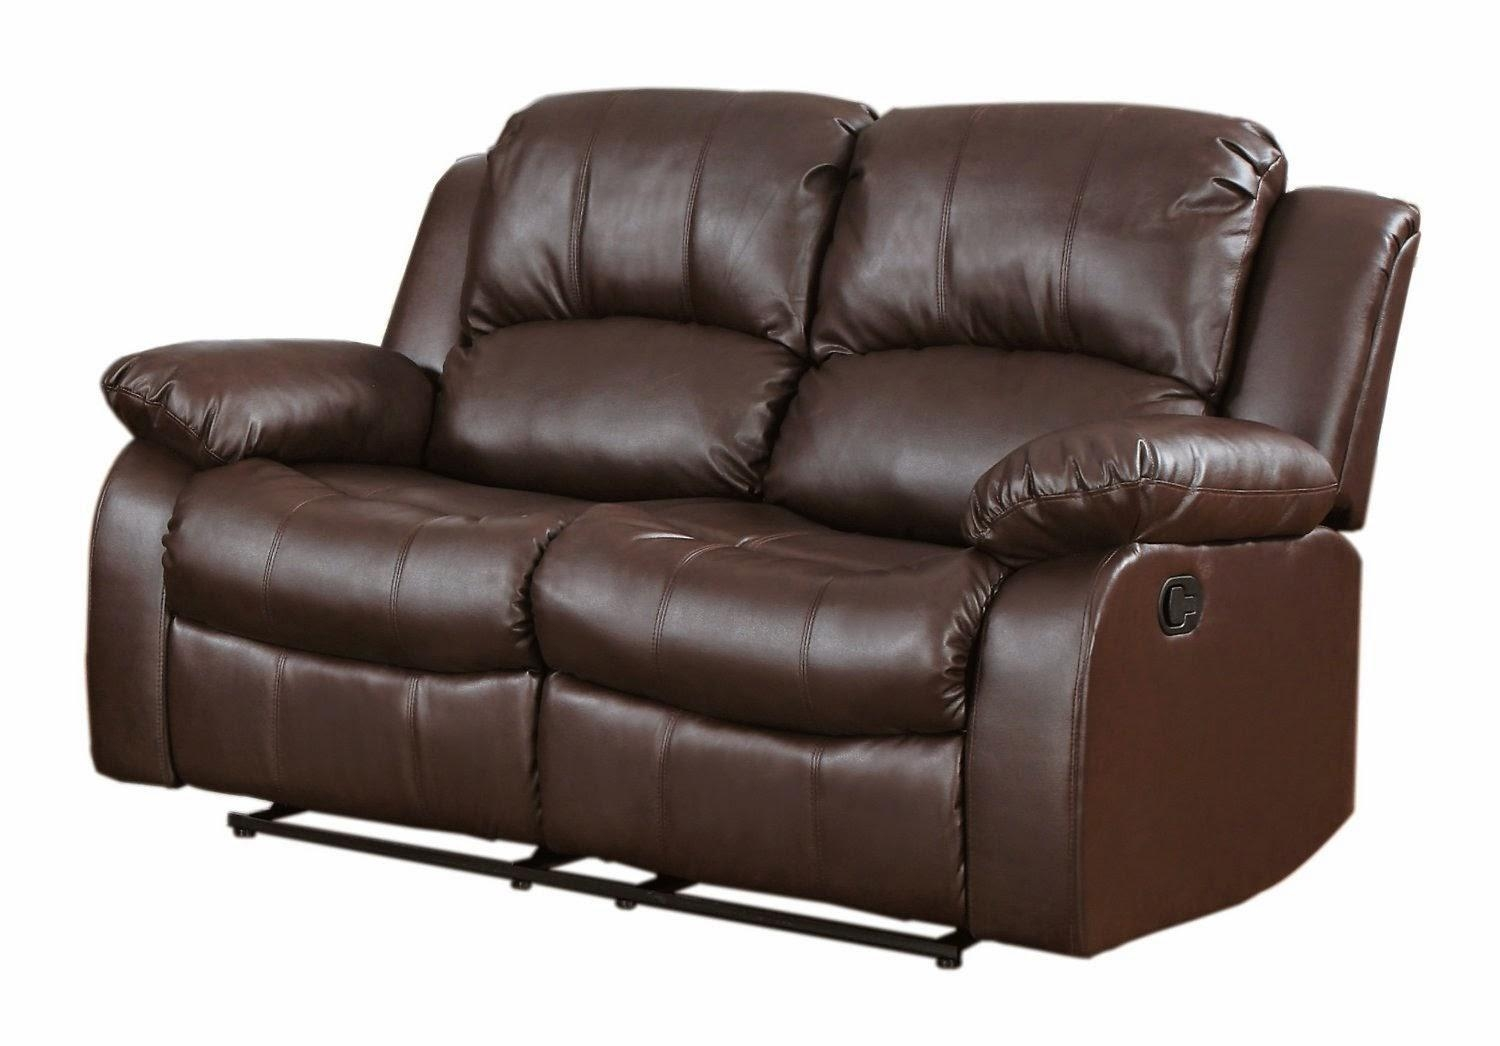 Leather Reclining Sofa For 2 Seater Recliner Leather Sofas (Image 9 of 20)